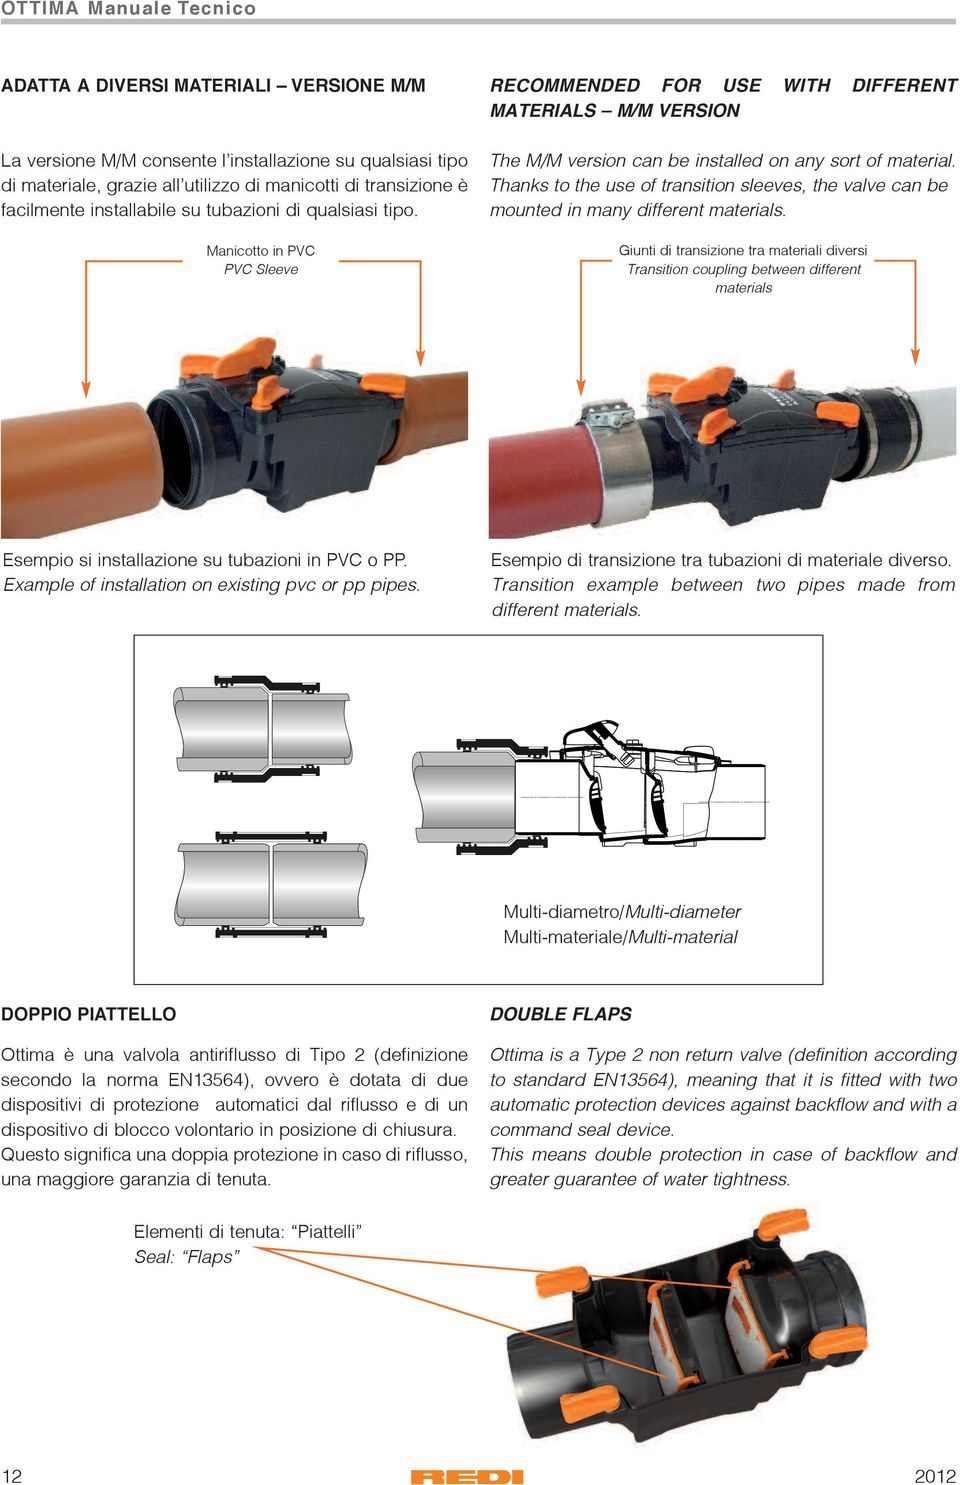 Thanks to the use of transition sleeves, the valve can be mounted in many different materials.